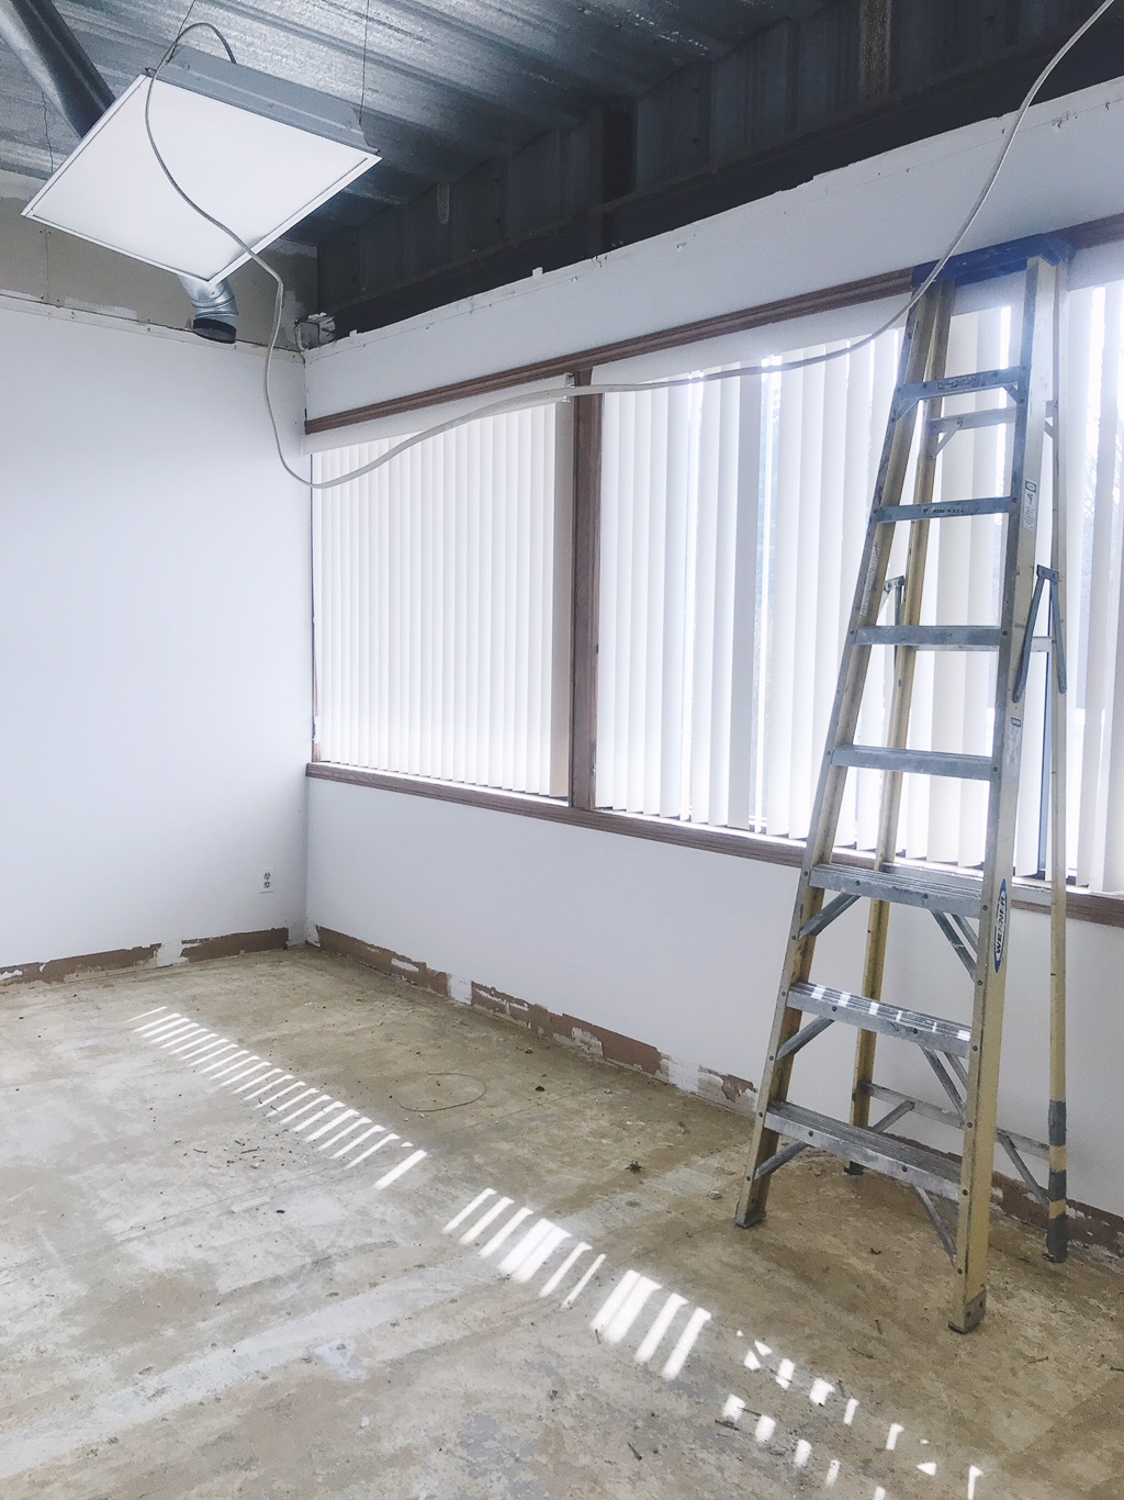 DURING - Drop ceiling removed